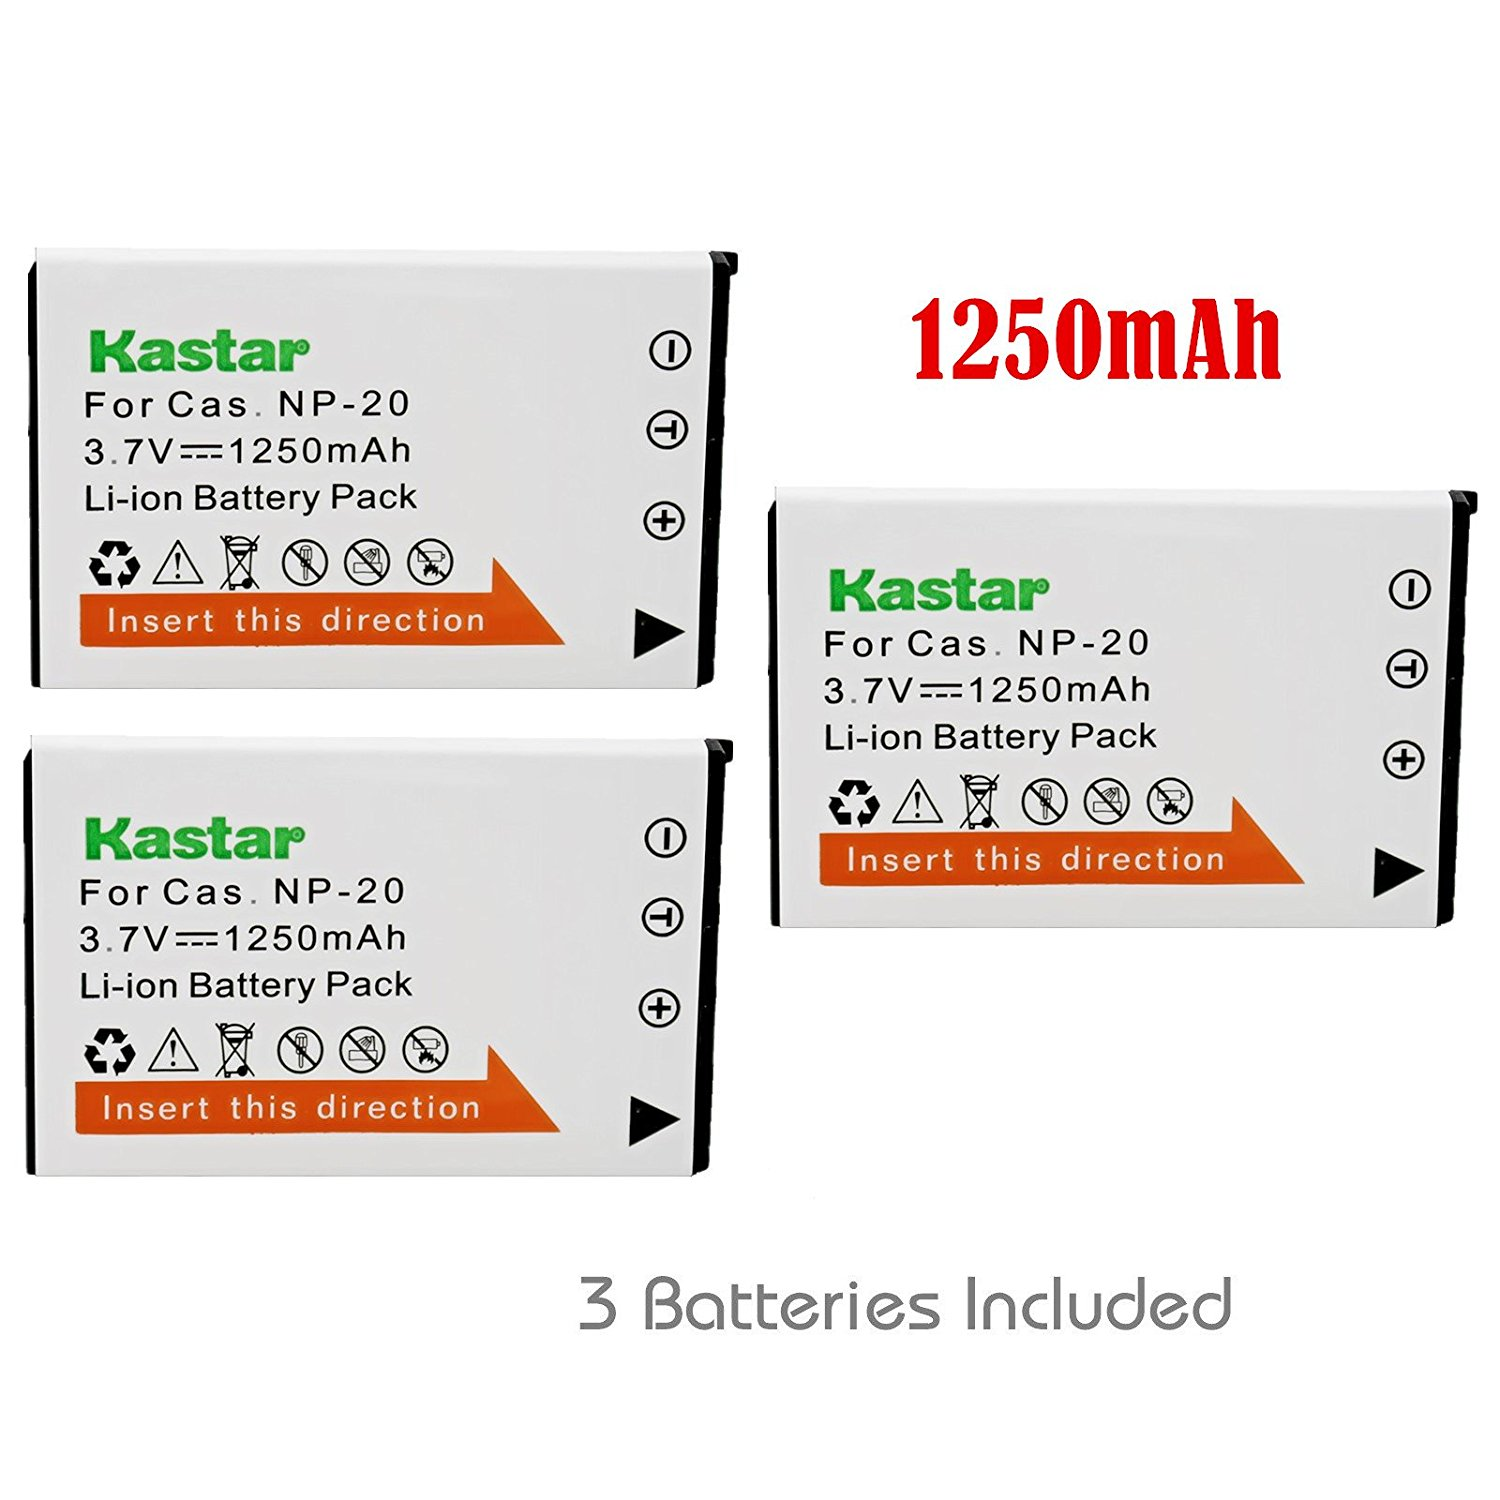 Kastar Battery (3-Pack) for Casio NP20, NP-20DBA and BC-11L work with Casio Exilim EX-M1, EX-M2, EX-M20, EX-S1, EX-S2, EX-S3, EX-S20, EX-S100, EX-S500, EX-S600, EX-S770, EX-S880, EX-Z3, EX-Z4, EX-Z5, EX-Z6, EX-Z7, EX-Z8, EX-Z11, EX-Z60, EX-Z65, EX-Z70, EX-Z75, EX-Z77 Cameras